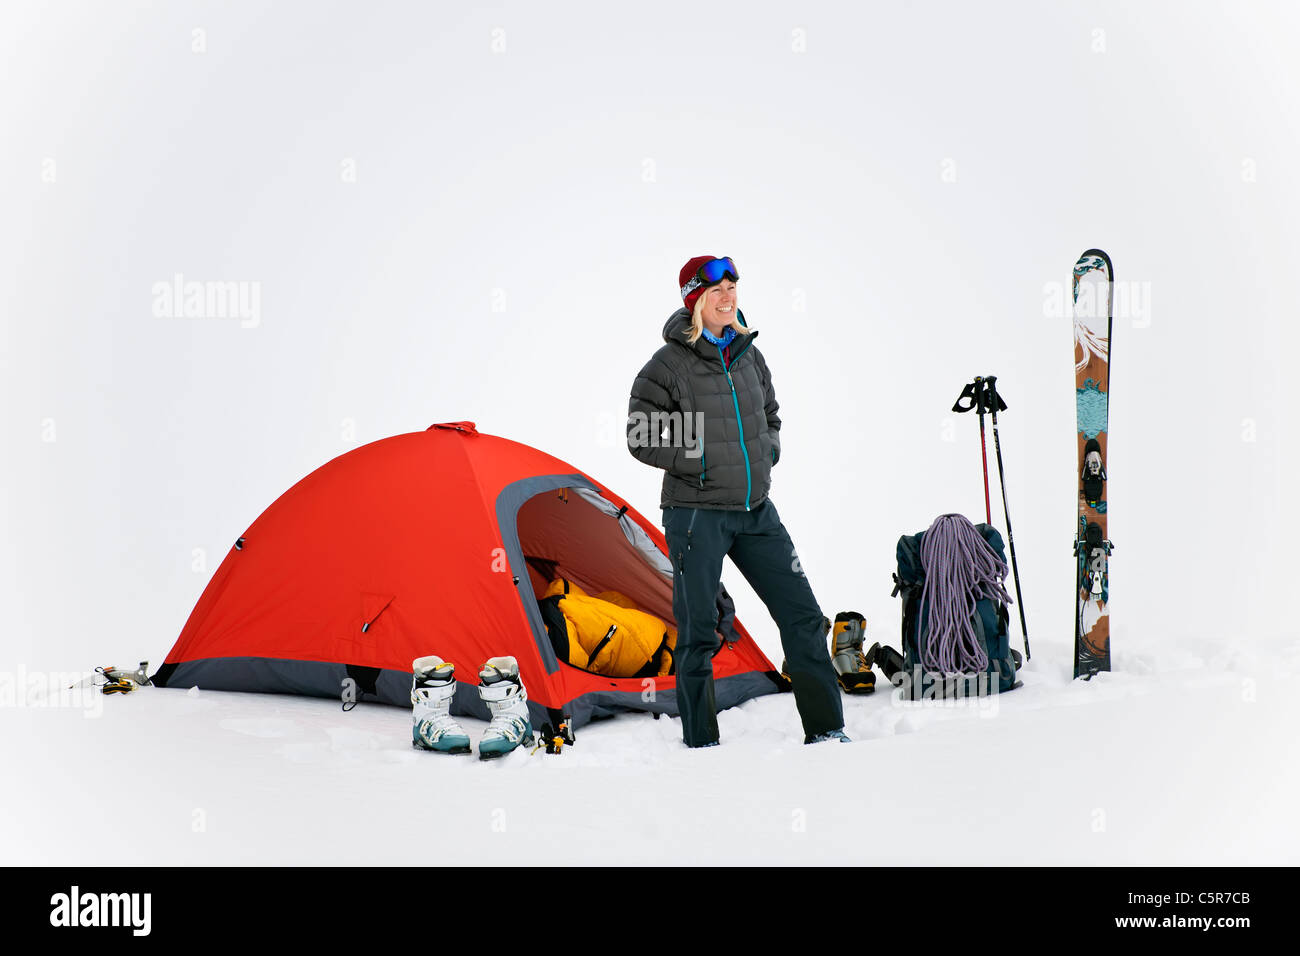 A woman camping in deep snow - Stock Image